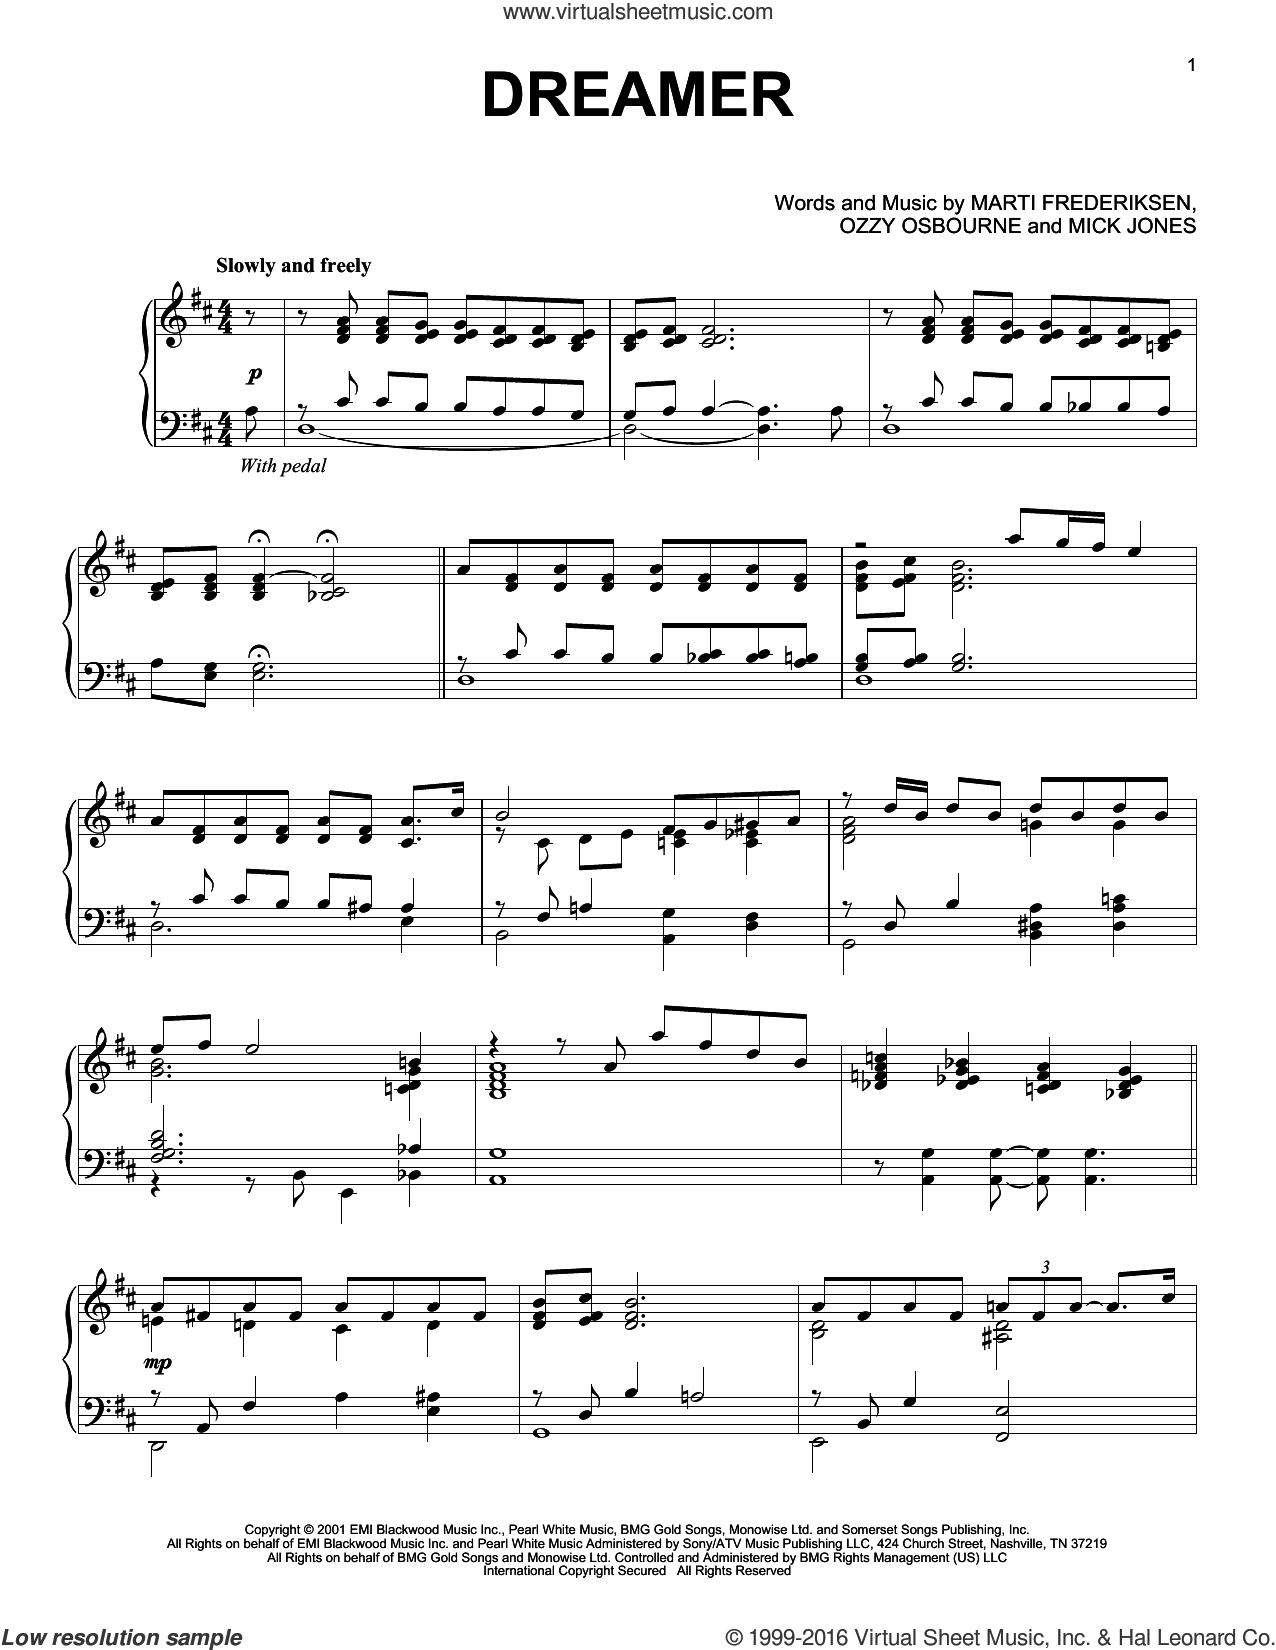 Dreamer sheet music for piano solo by Mick Jones, Marti Frederiksen and Ozzy Osbourne. Score Image Preview.